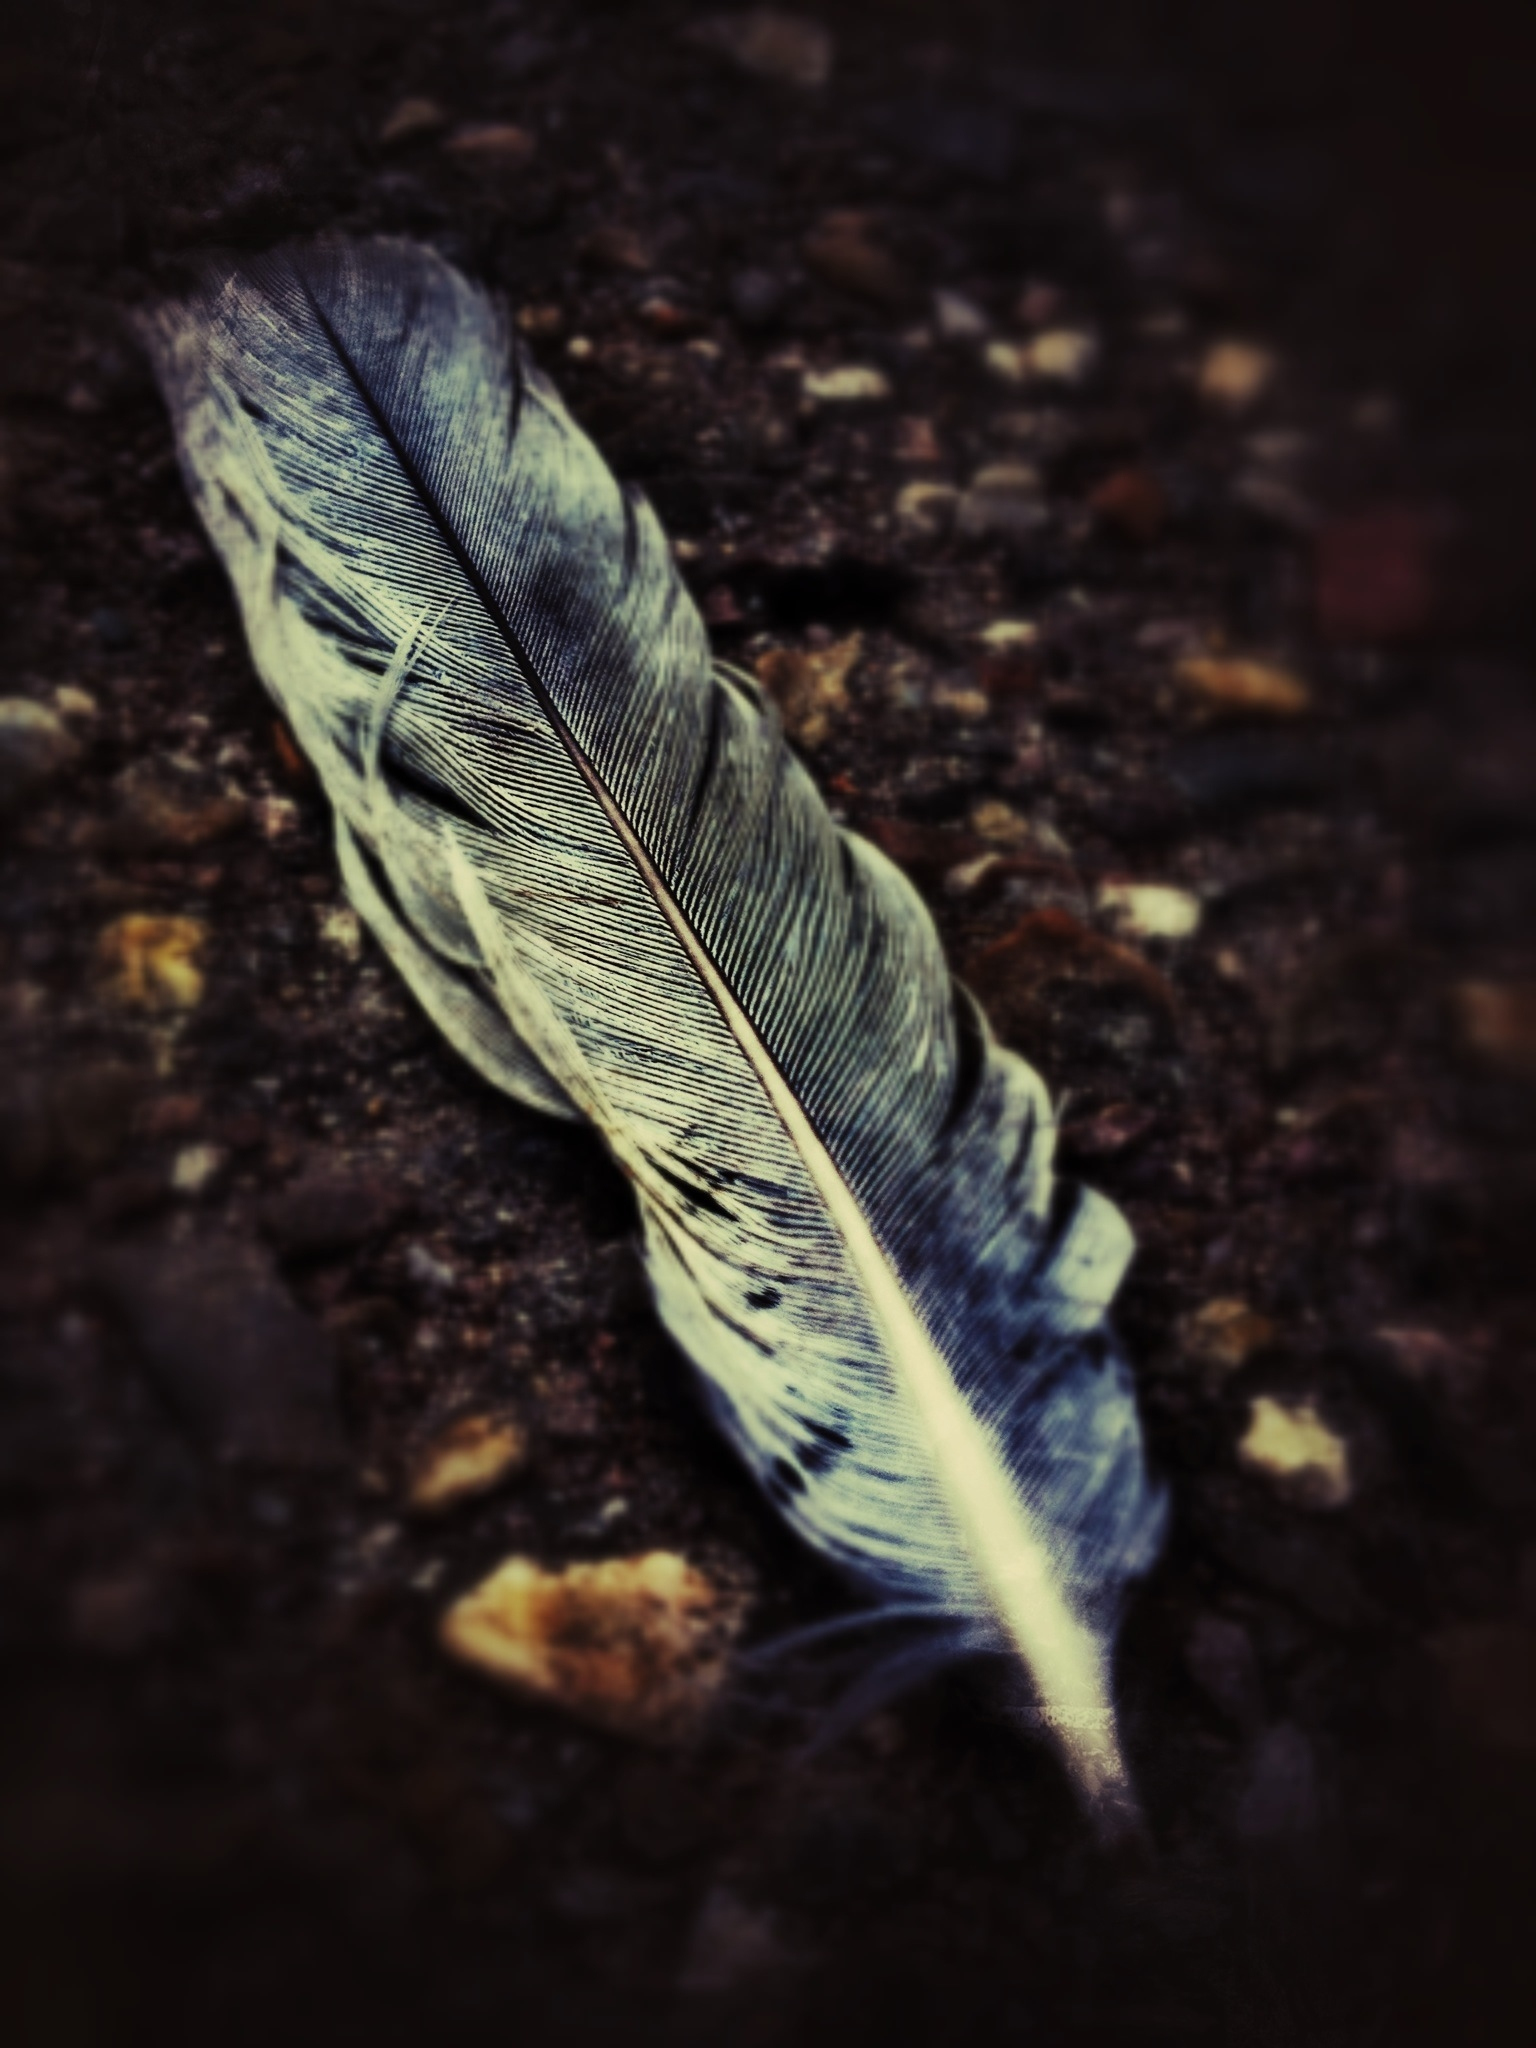 Can Keratin in Feathers Survive for Millions of Years?